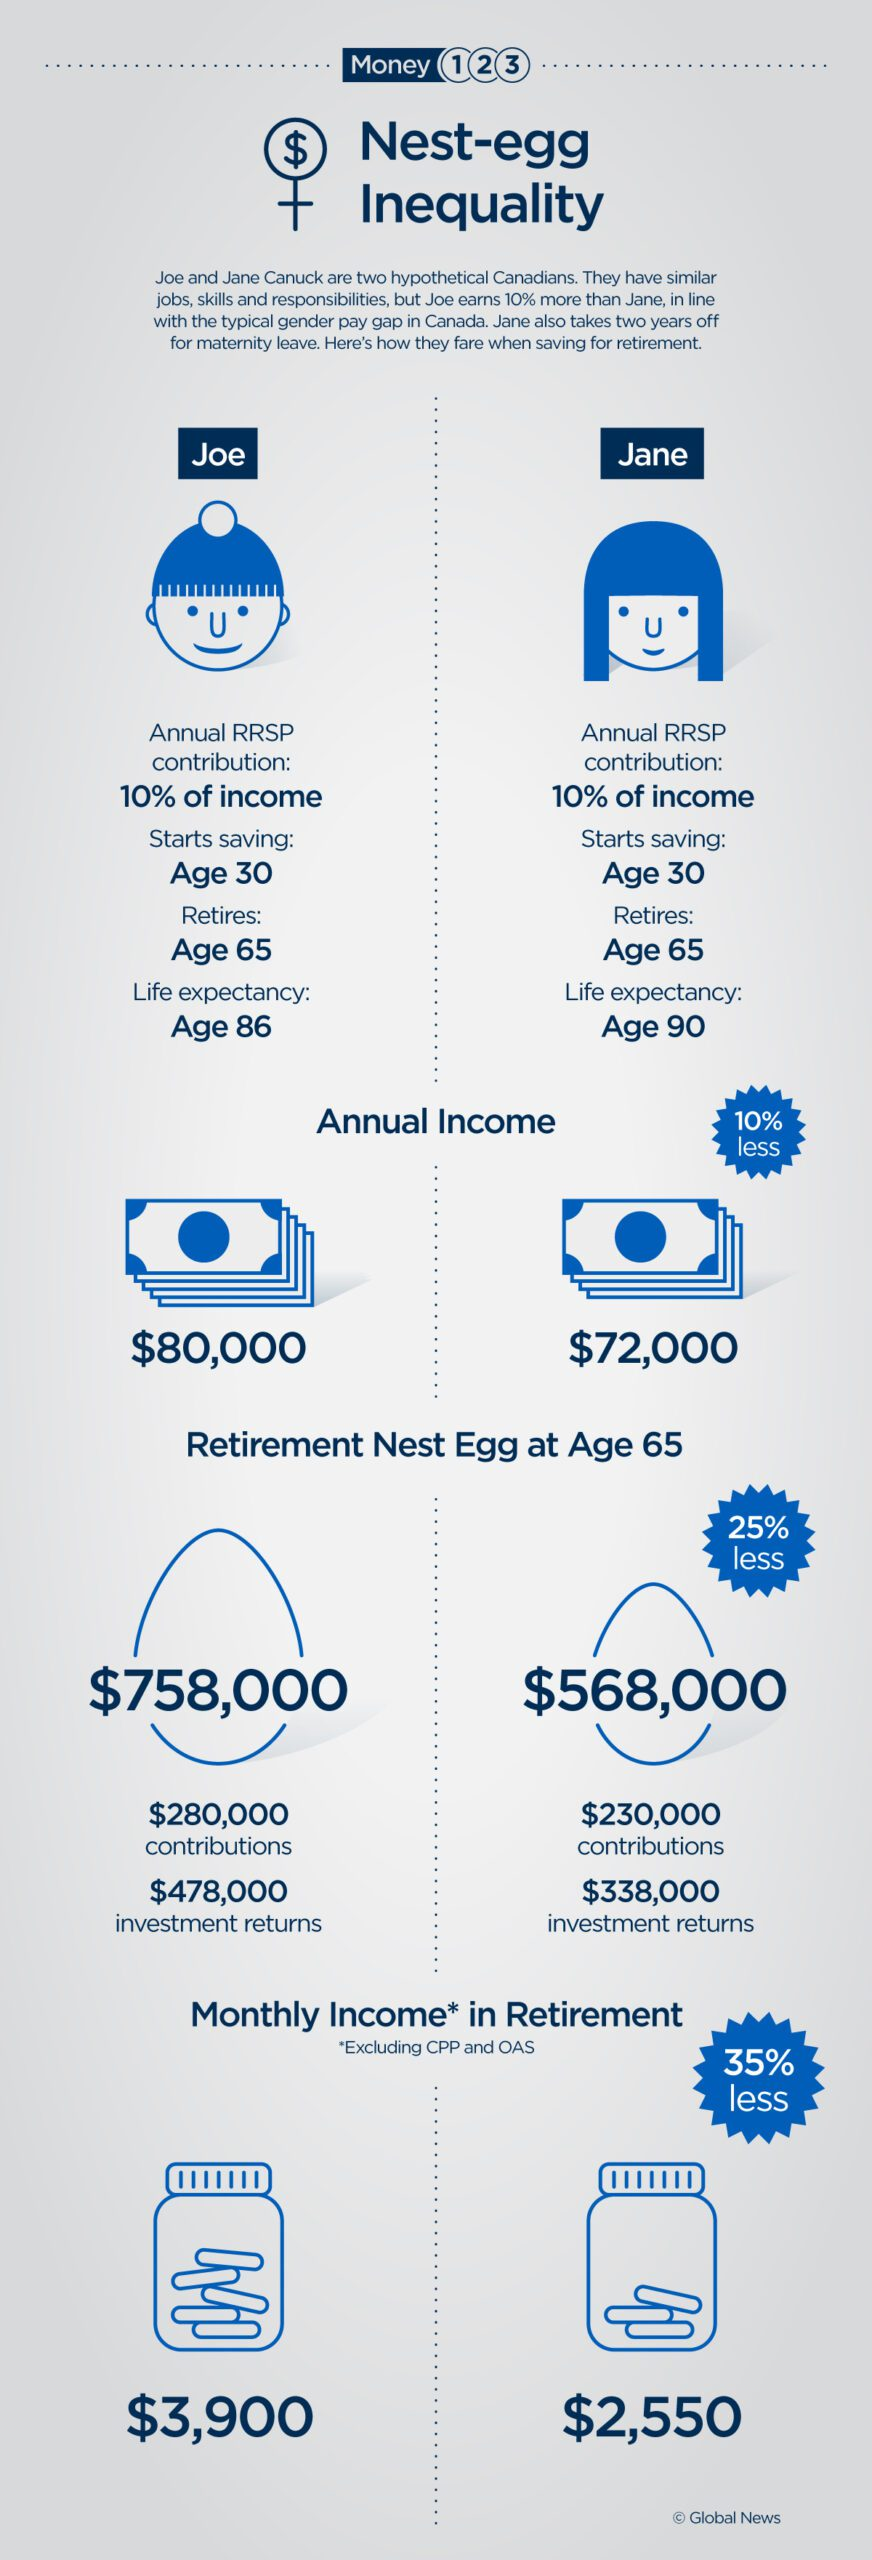 Why women may need to save more for retirement